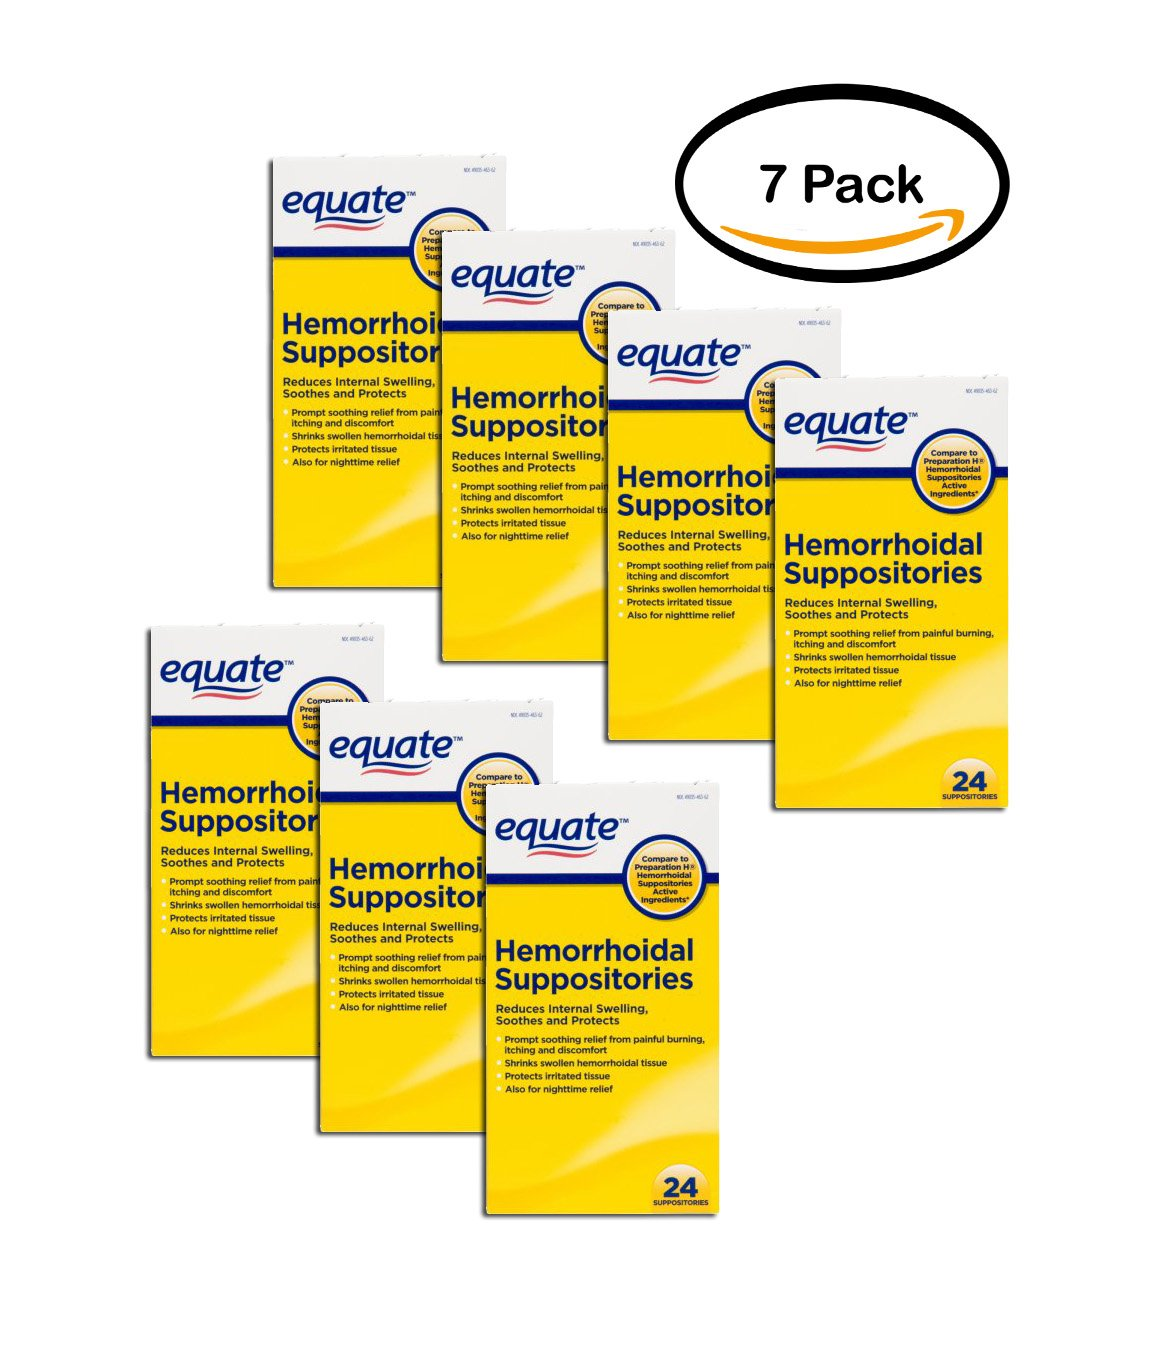 PACK OF 7 - Equate Pain Relief Hemorrhoidal Suppositories, 24 Ct by Equate